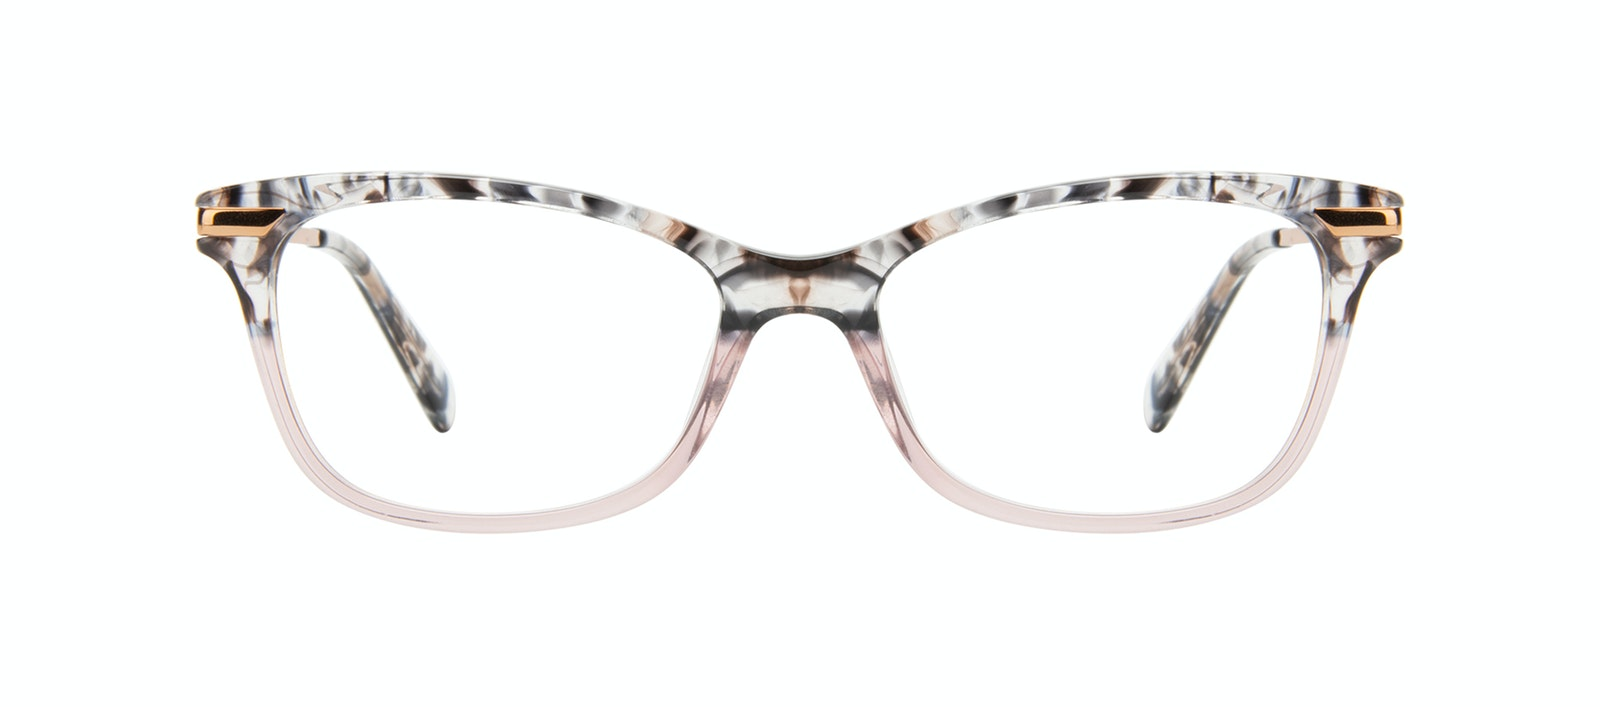 Affordable Fashion Glasses Rectangle Eyeglasses Women Comet II Carbone Pink Front